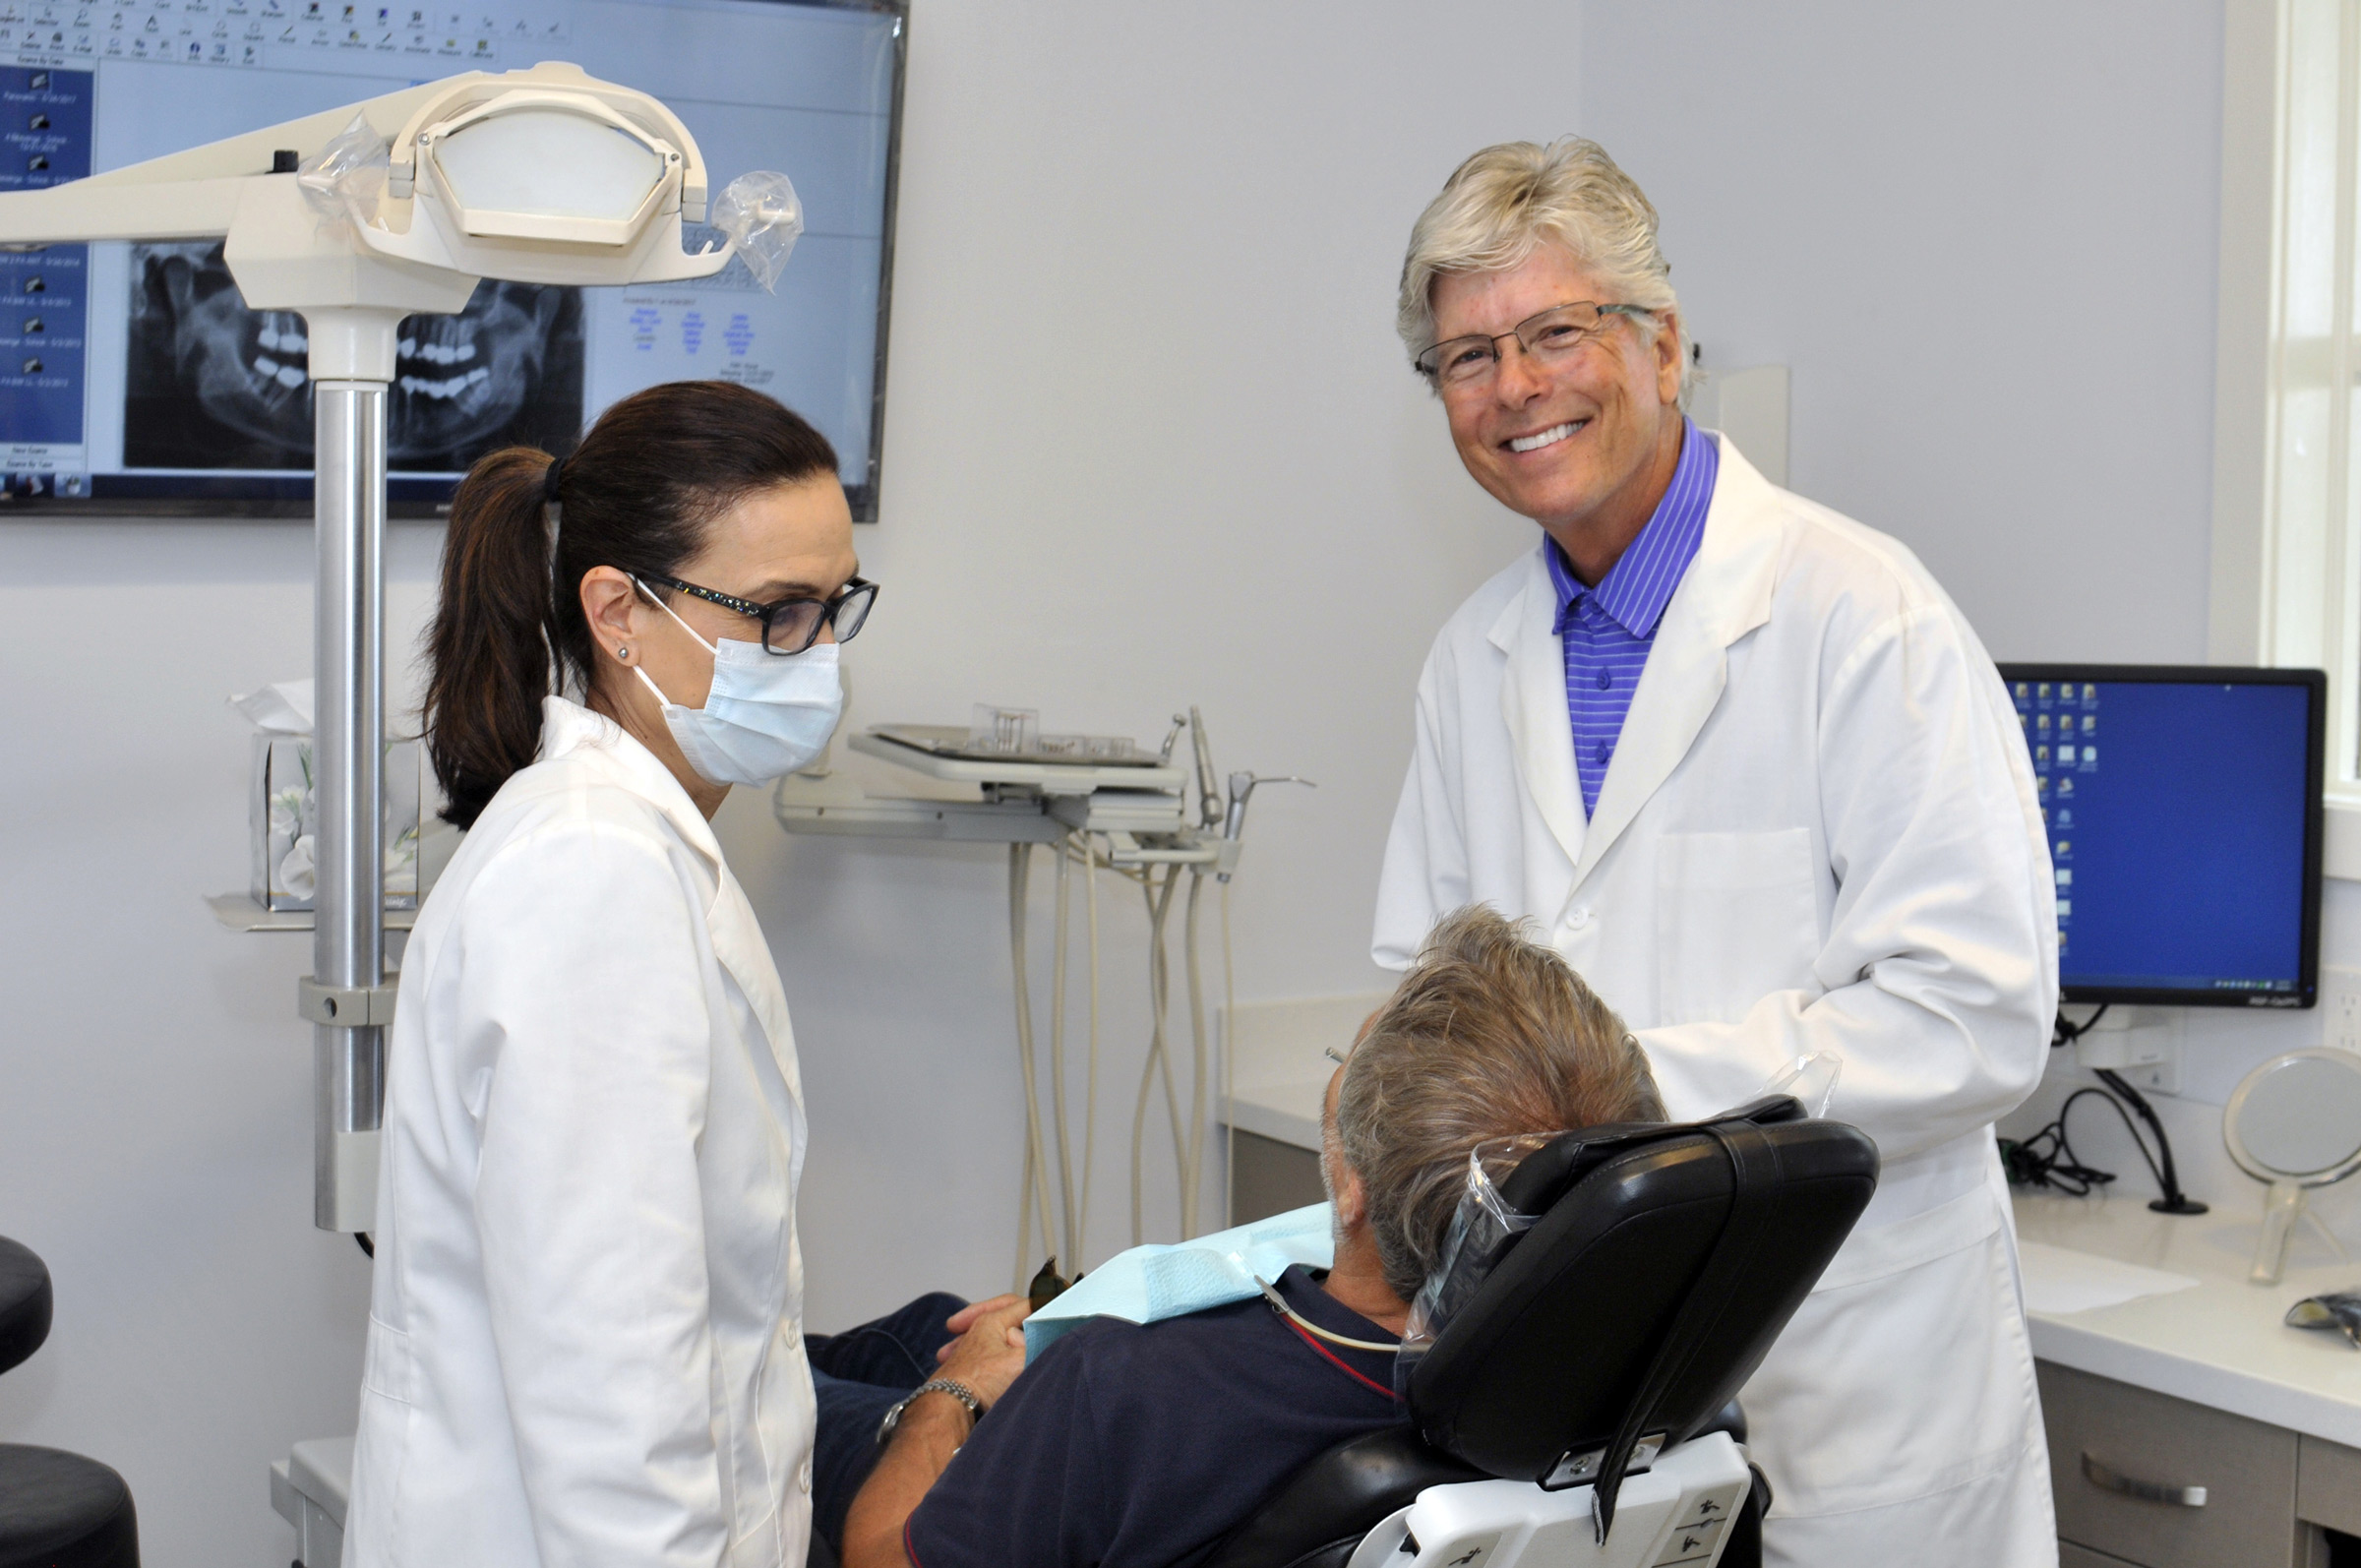 Aesthetic and Restorative Dentistry - Art in dentistry— over 20 years of experience